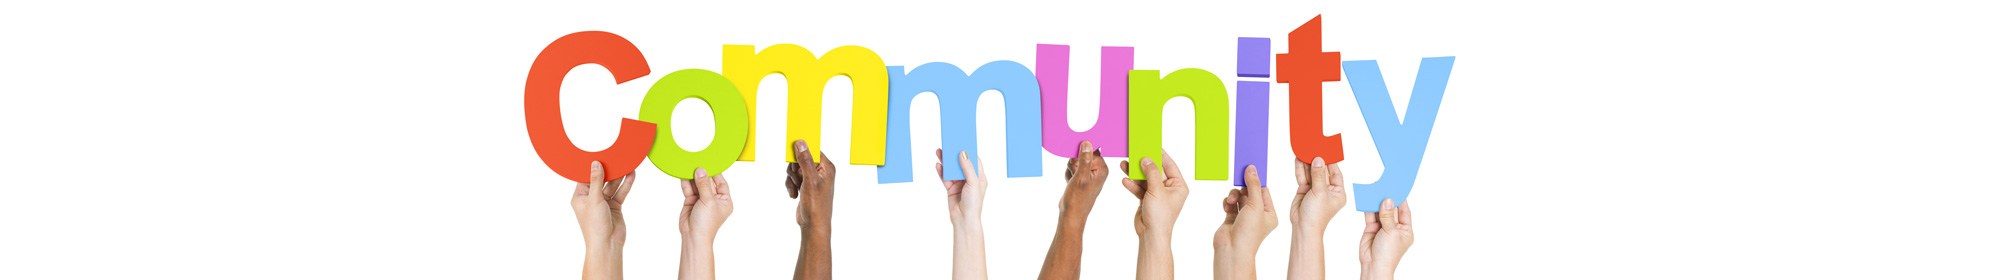 diverse hands holding up colourful letters to spell community